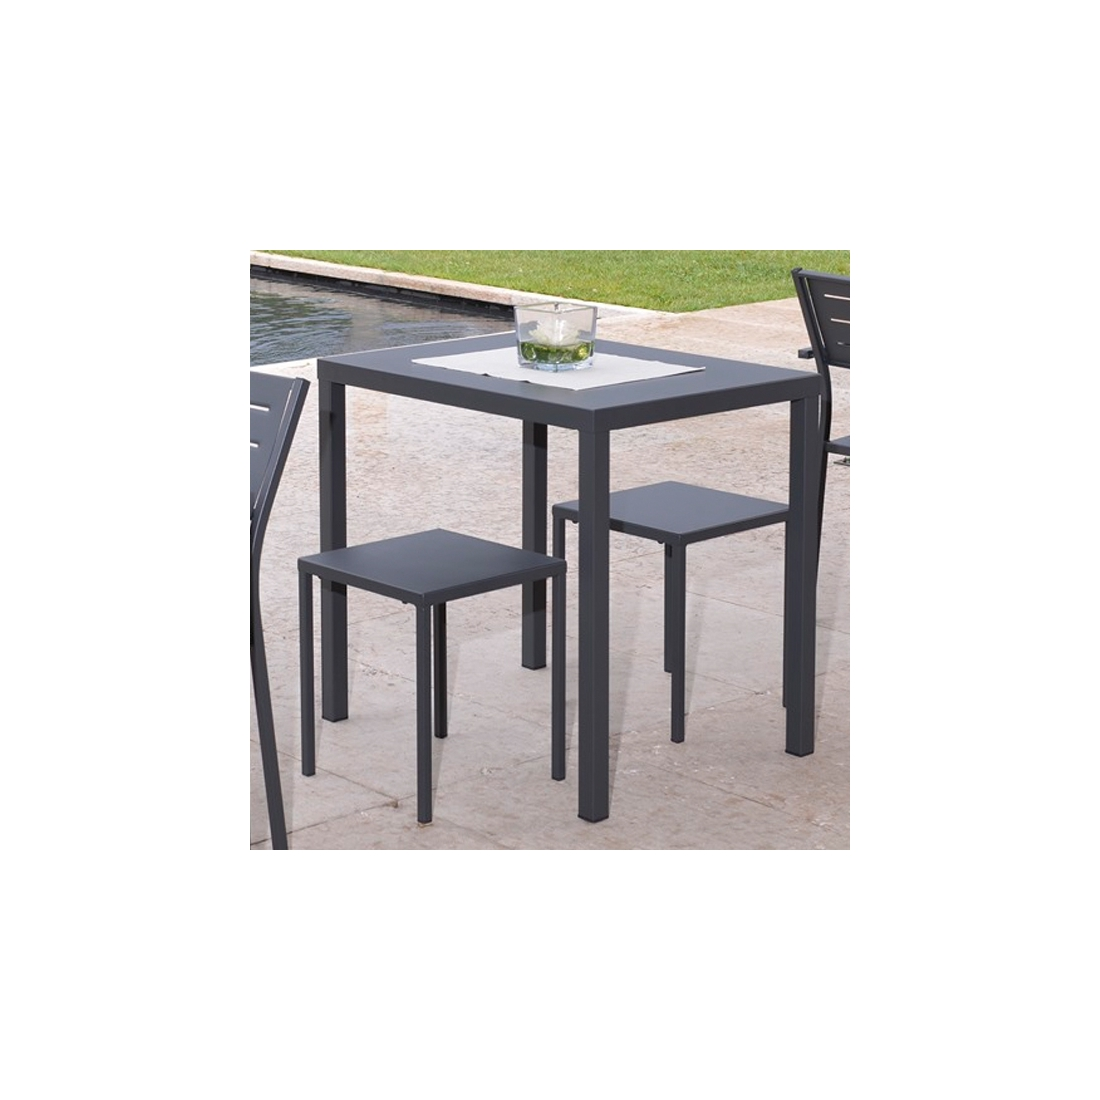 Table basse de jardin design - Petites tables basses ...